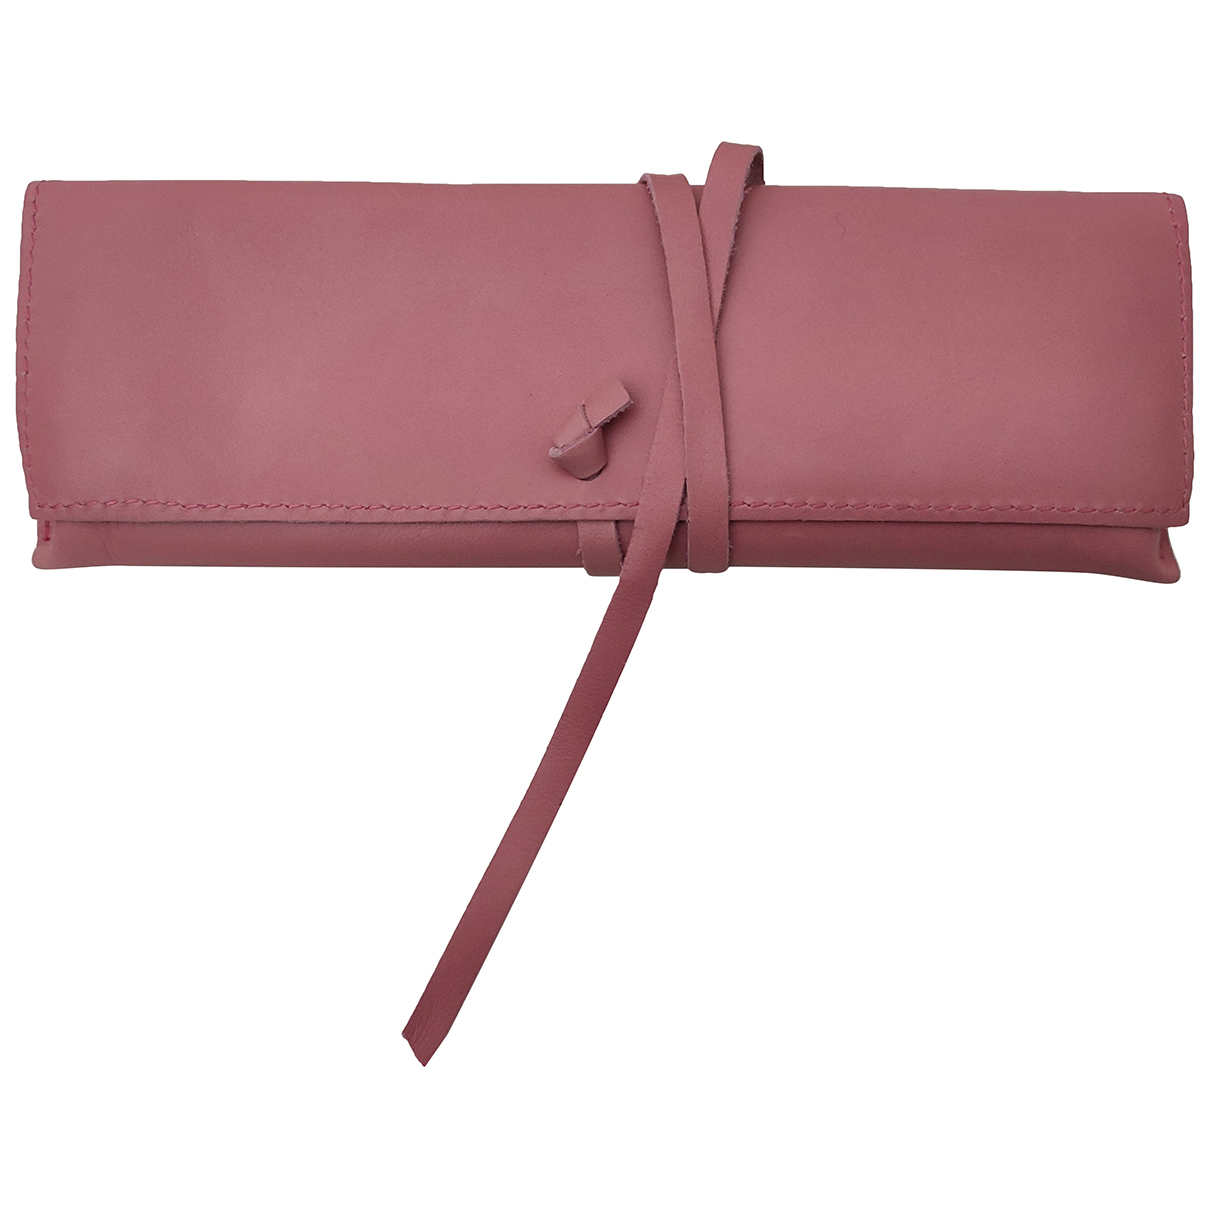 Non Signé / Unsigned N Pink Leather Purses, wallet & cases for Women N